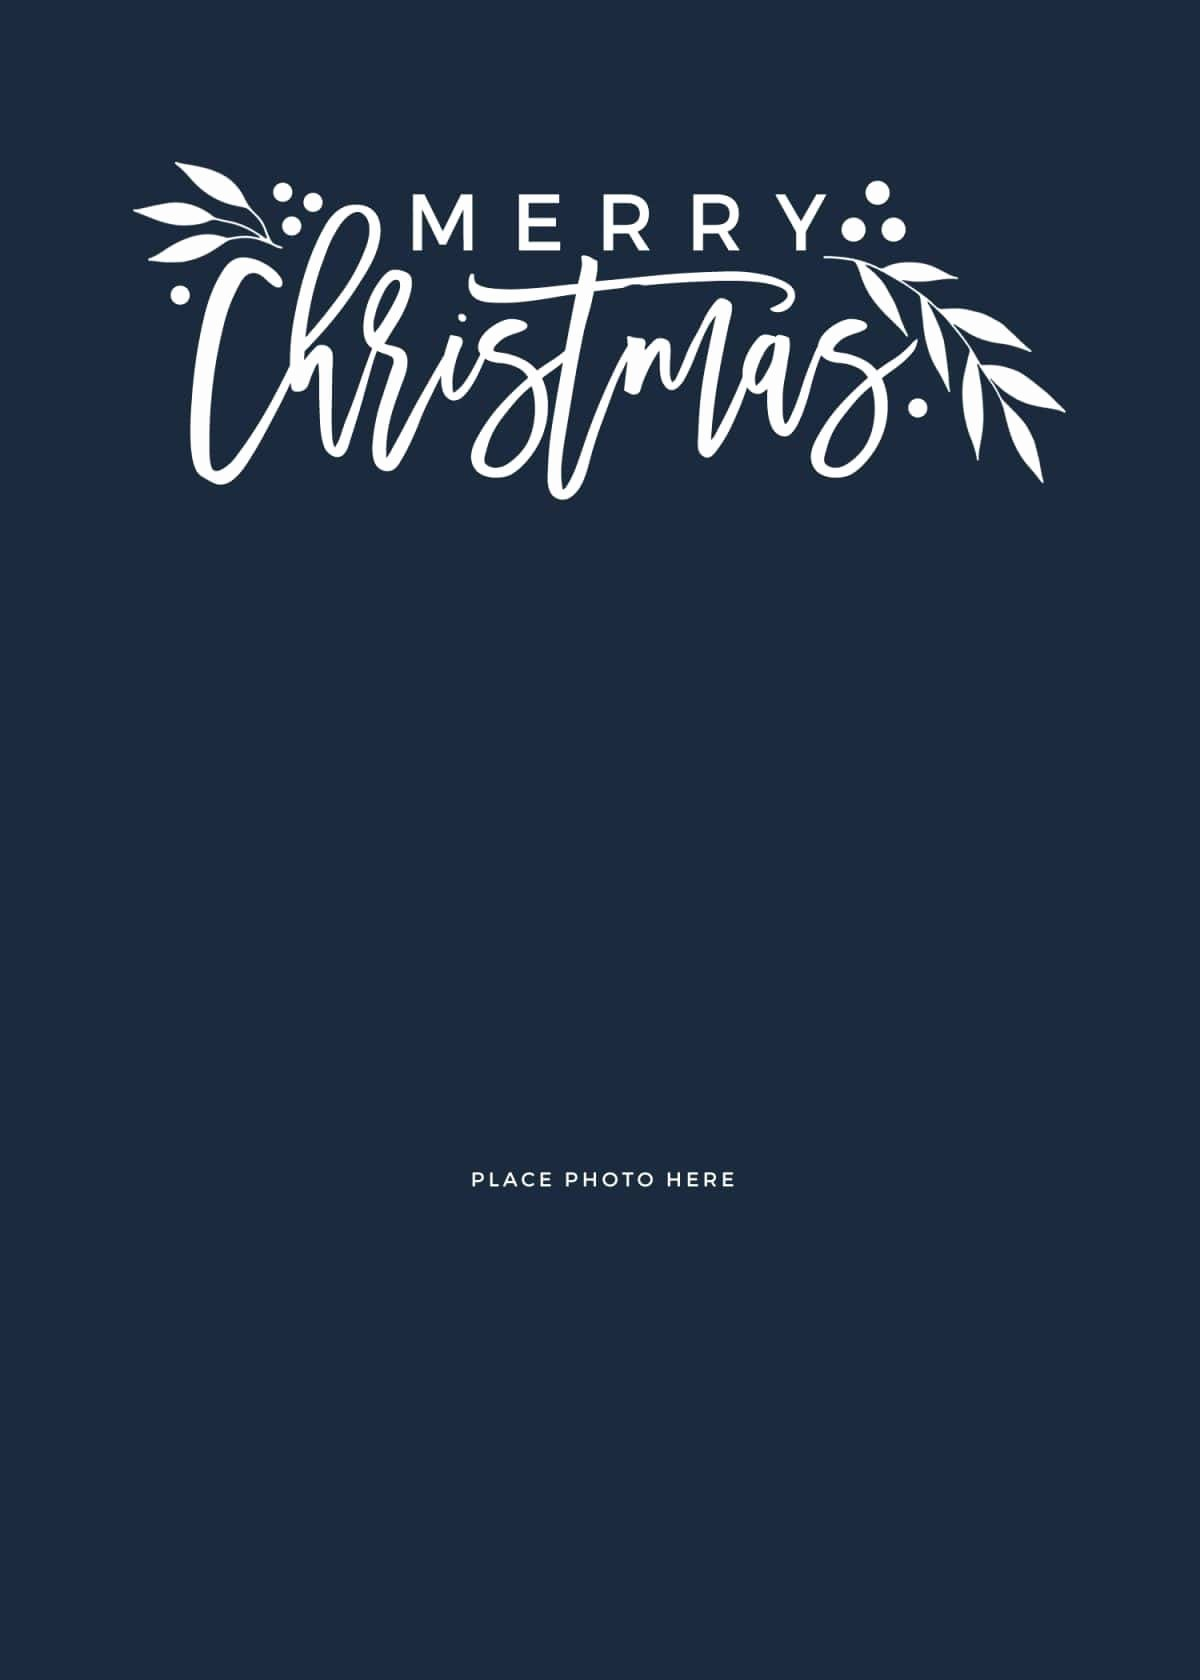 Make Your Own Christmas Cards for Free somewhat